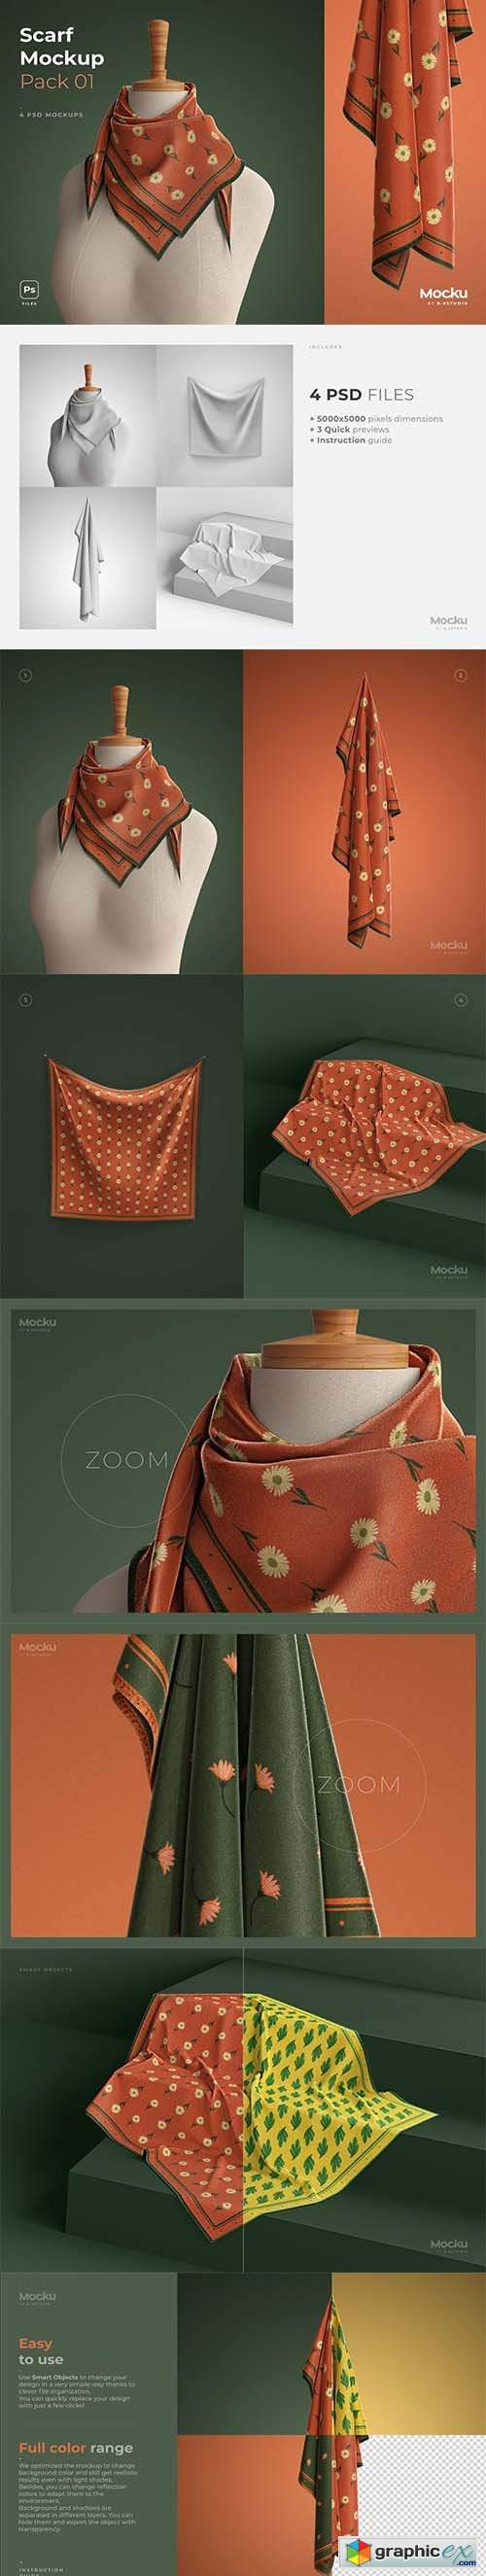 Silk Scarf Mockup - Big - Pack 01